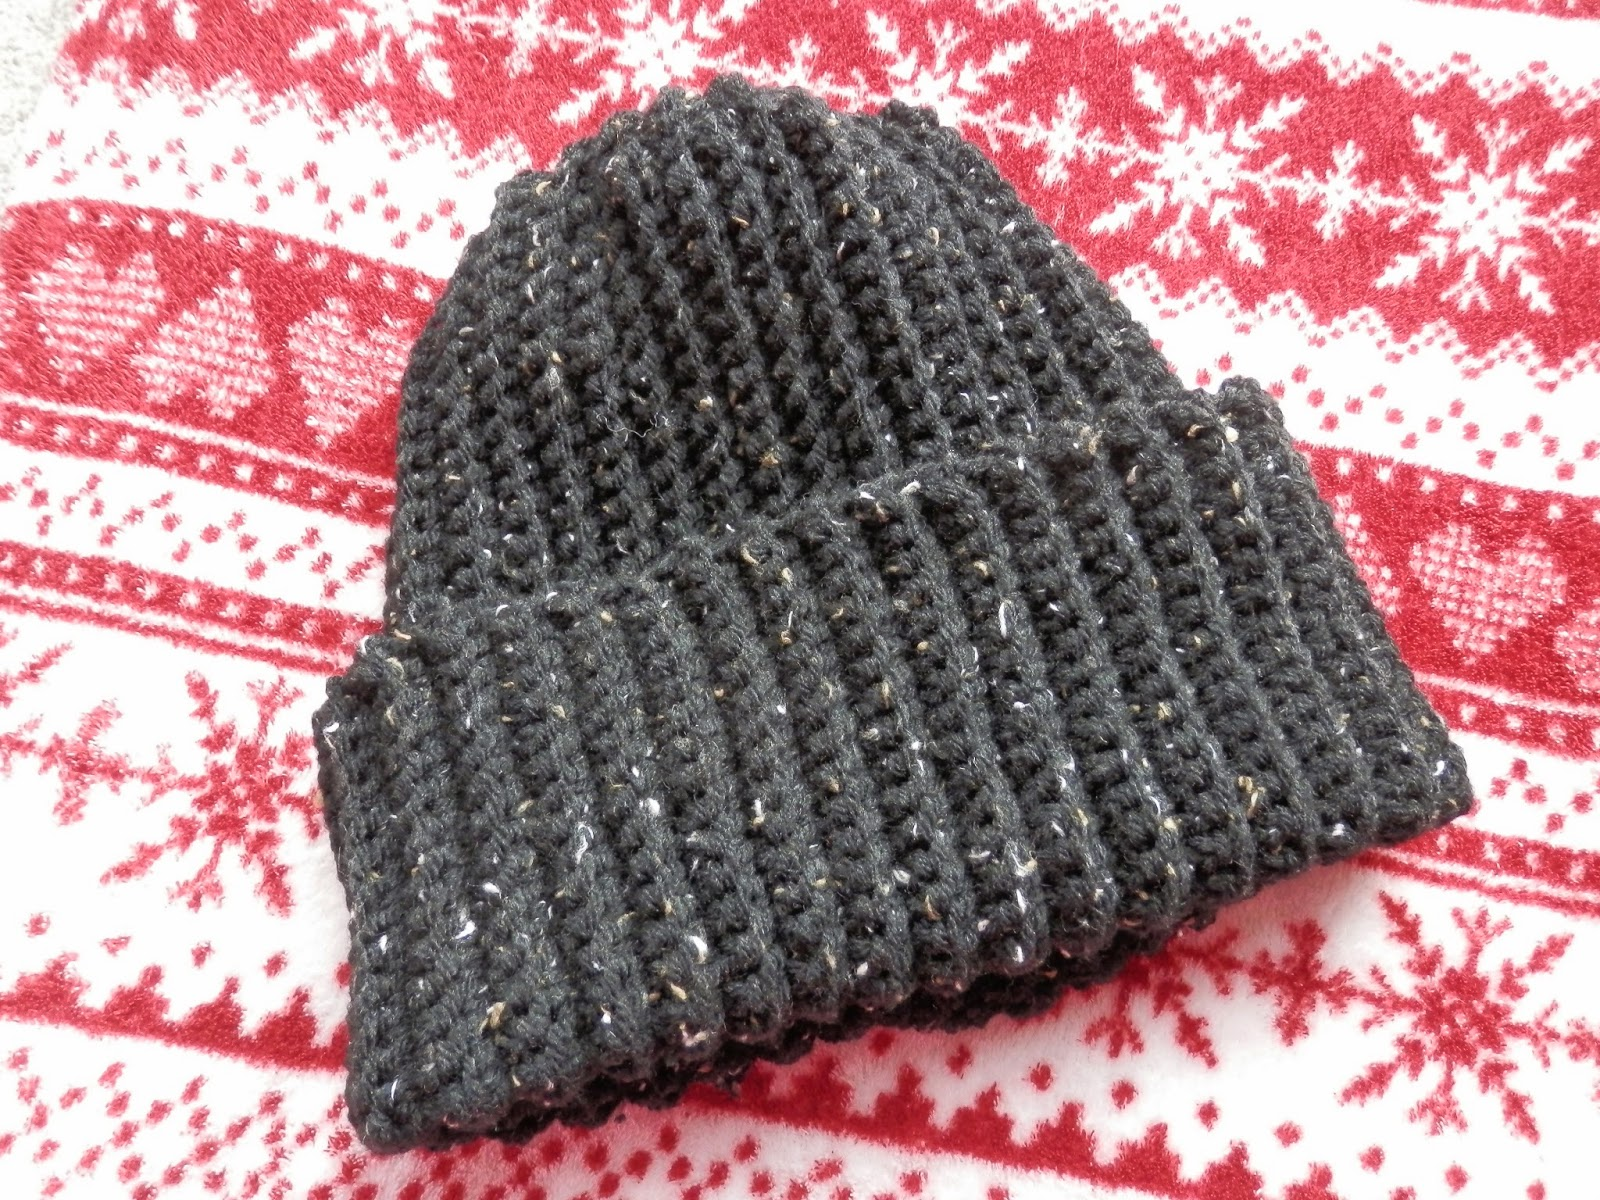 Mens ribbed crochet hat free pattern ravelry secondhandsusie.blogspot.co.uk efe3a8cb839